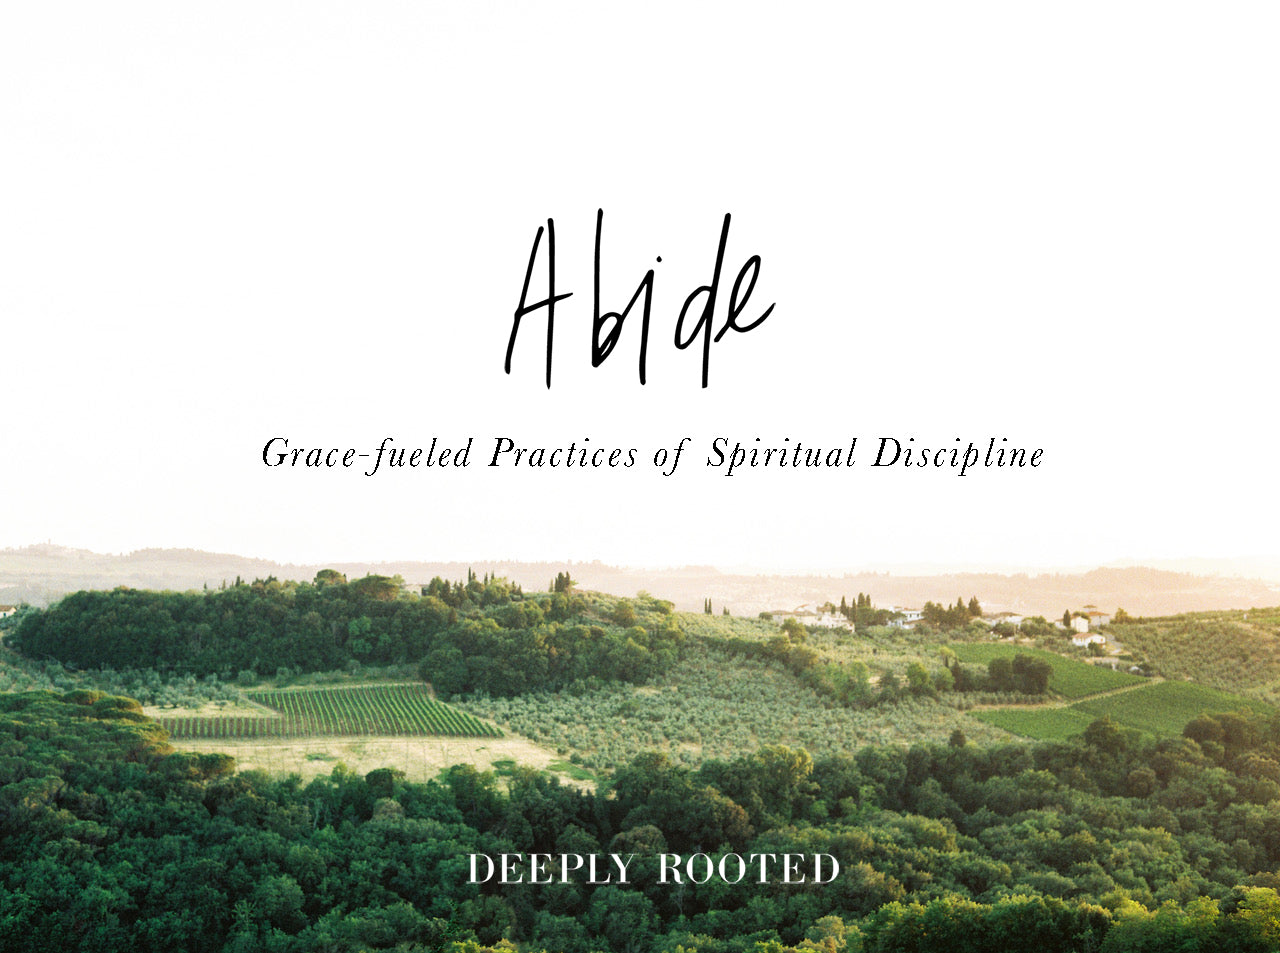 Abide: Grace-Fueled Practices of Spiritual Discipline